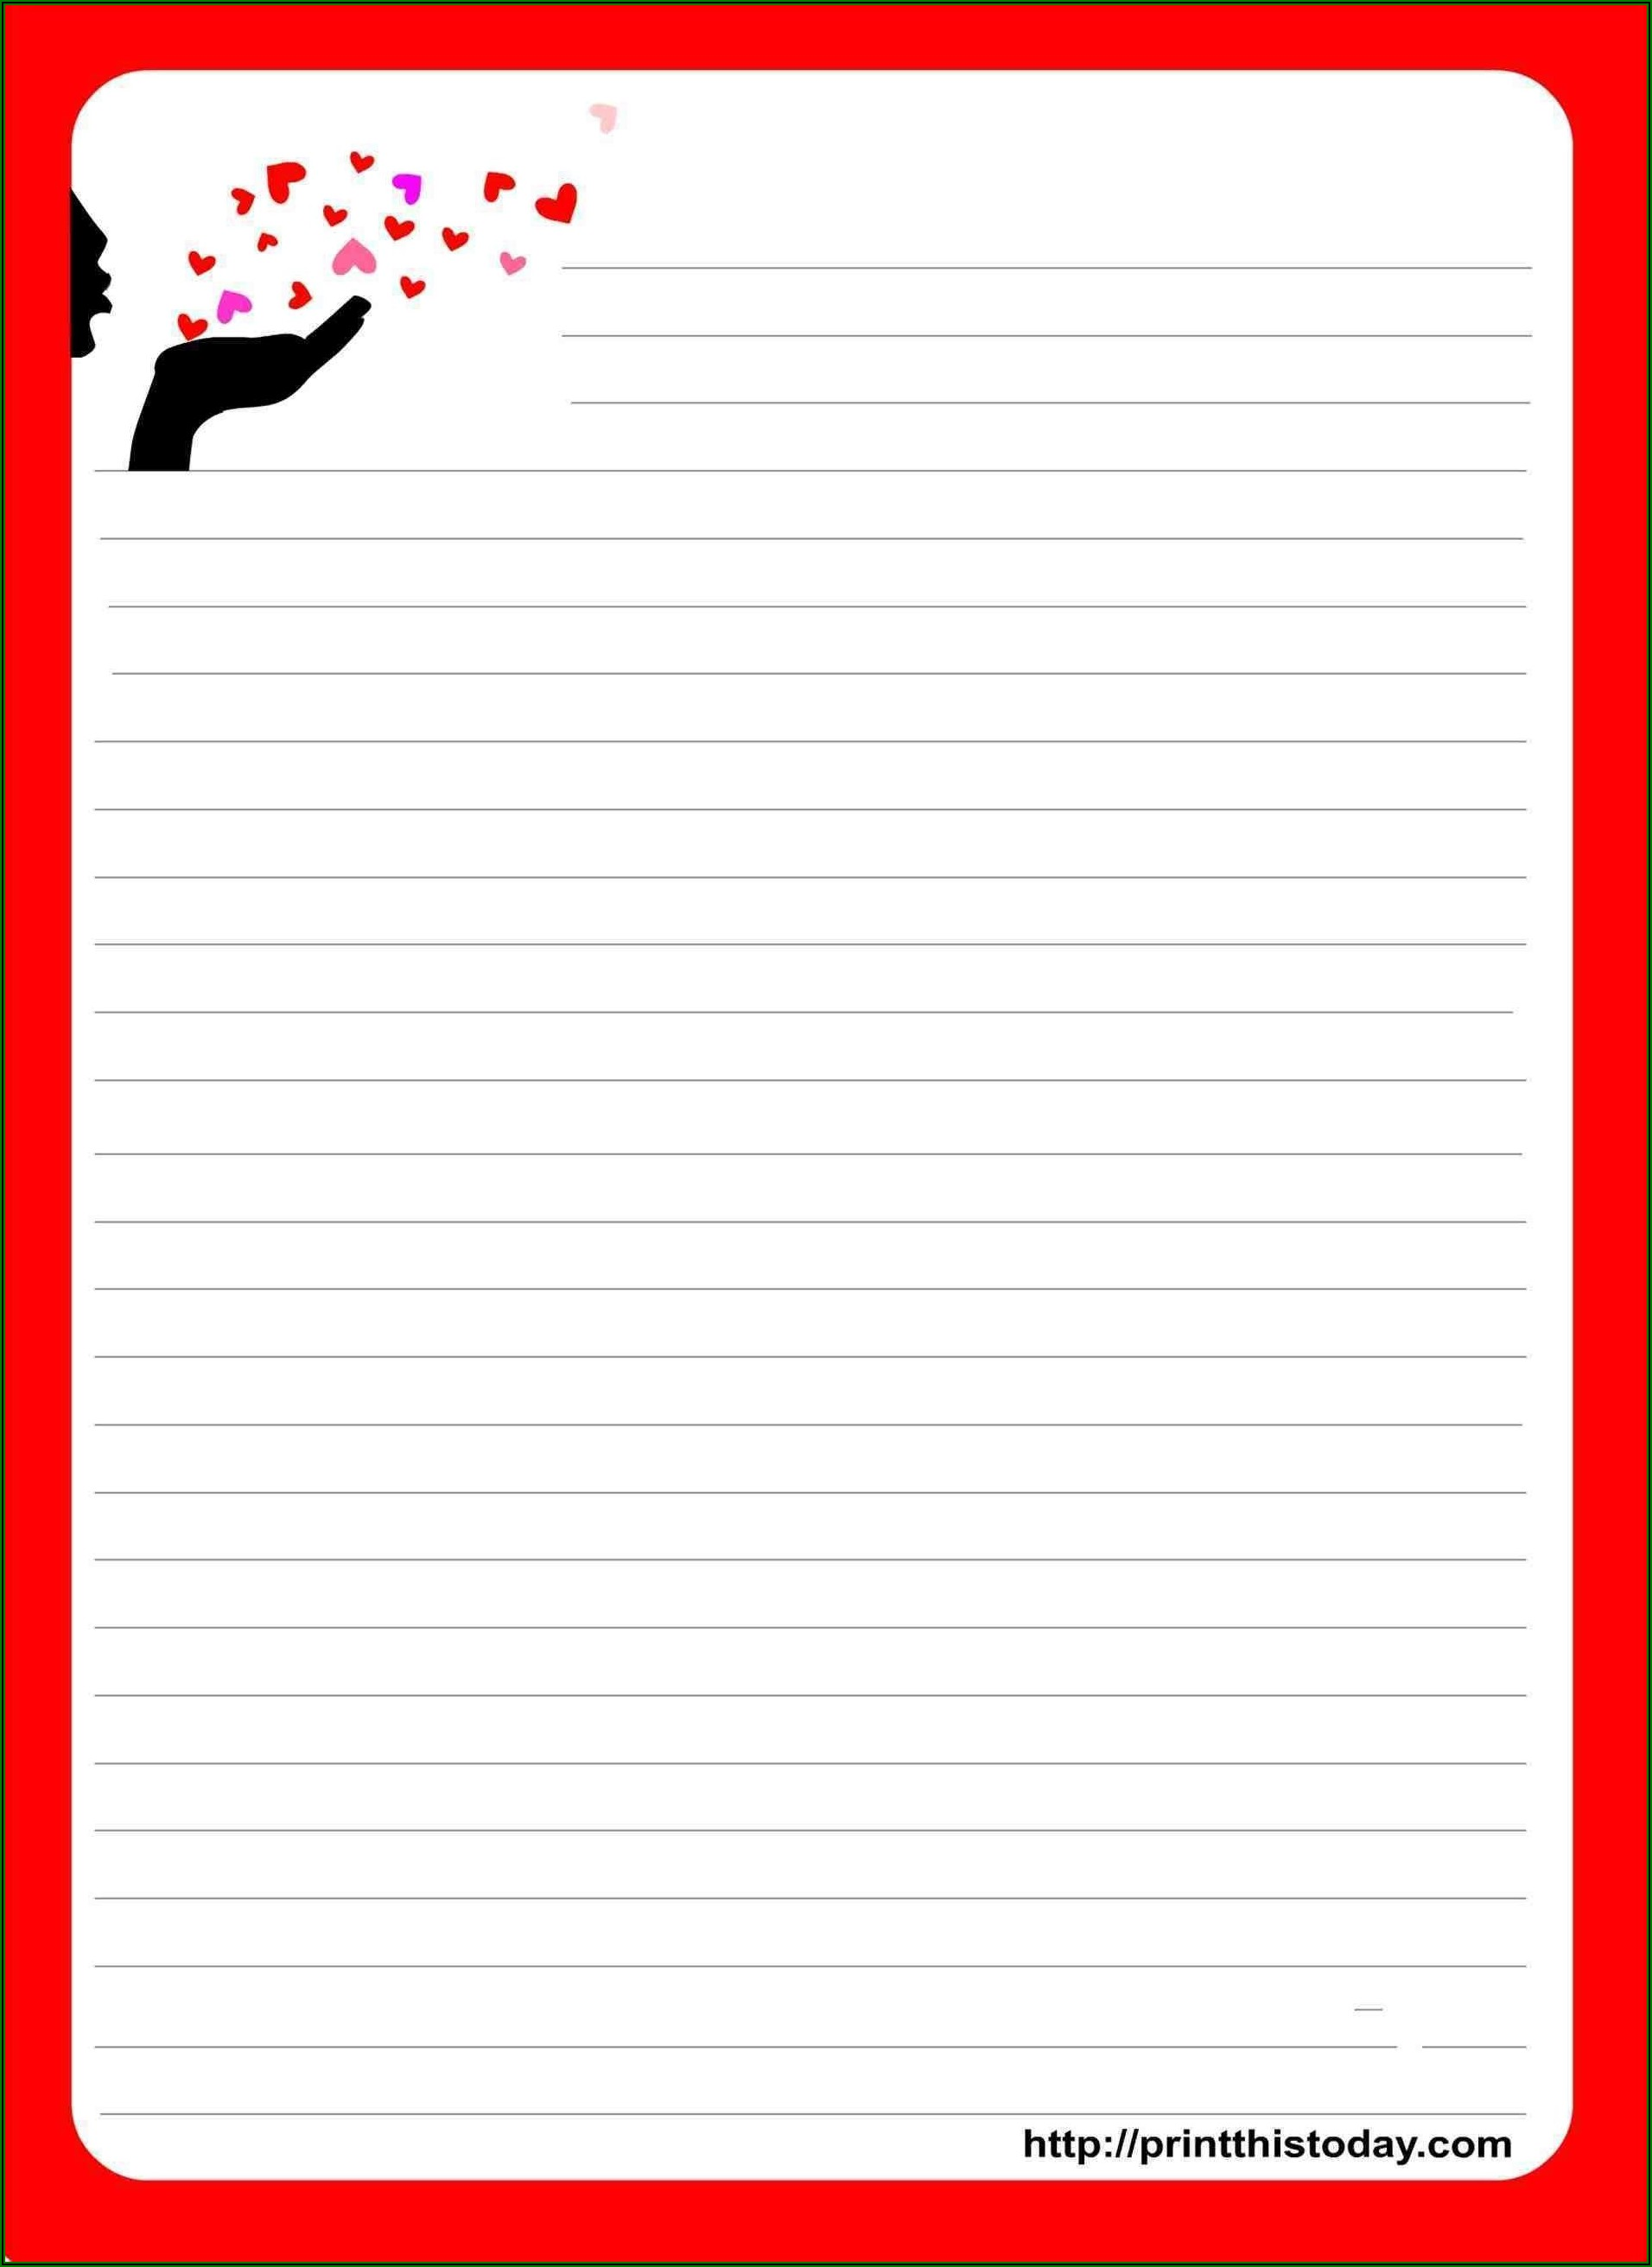 Printable Love Letter Stationery Template